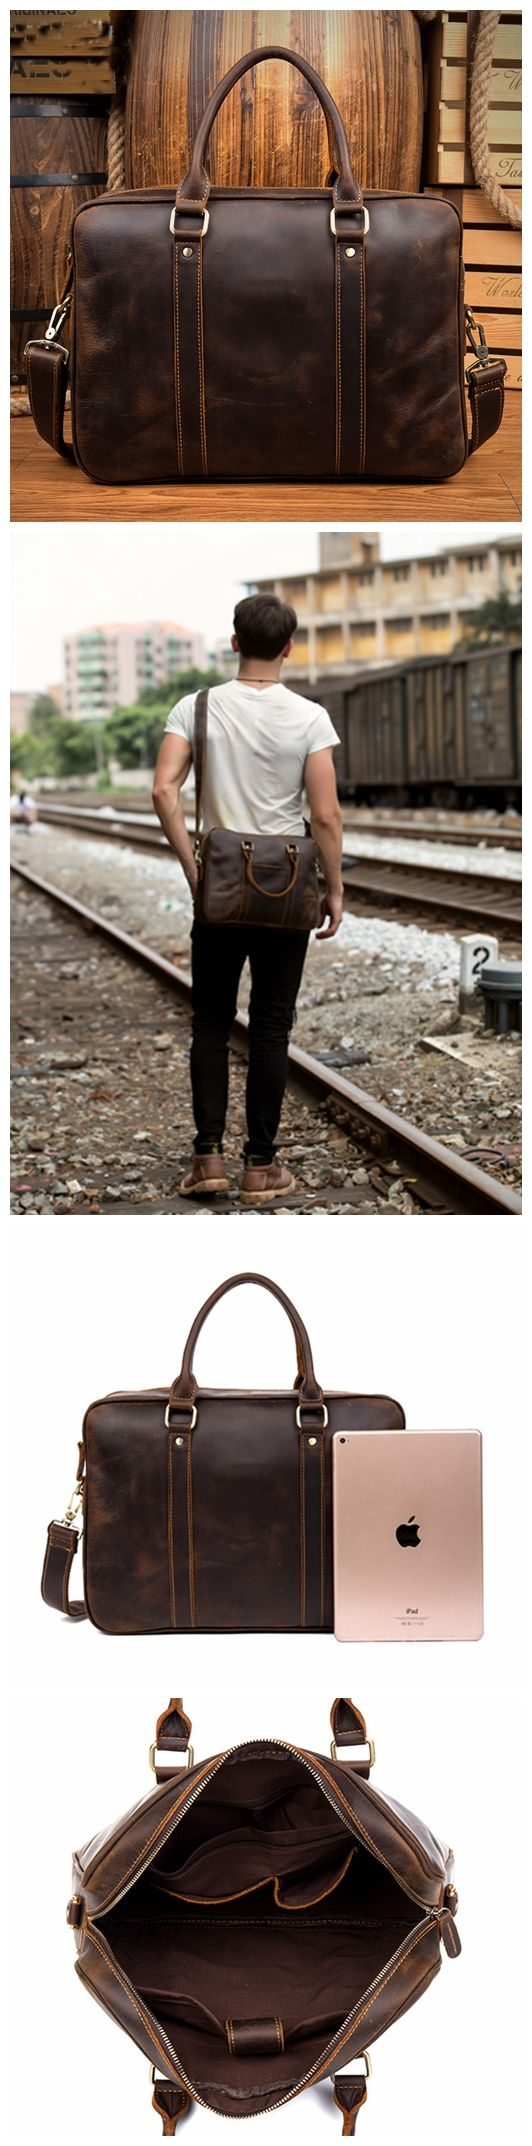 https://www.leajanebag.com/collections/frontpage/products/handmade-leather-briefcase-mens-laptop-bag-ms097-1